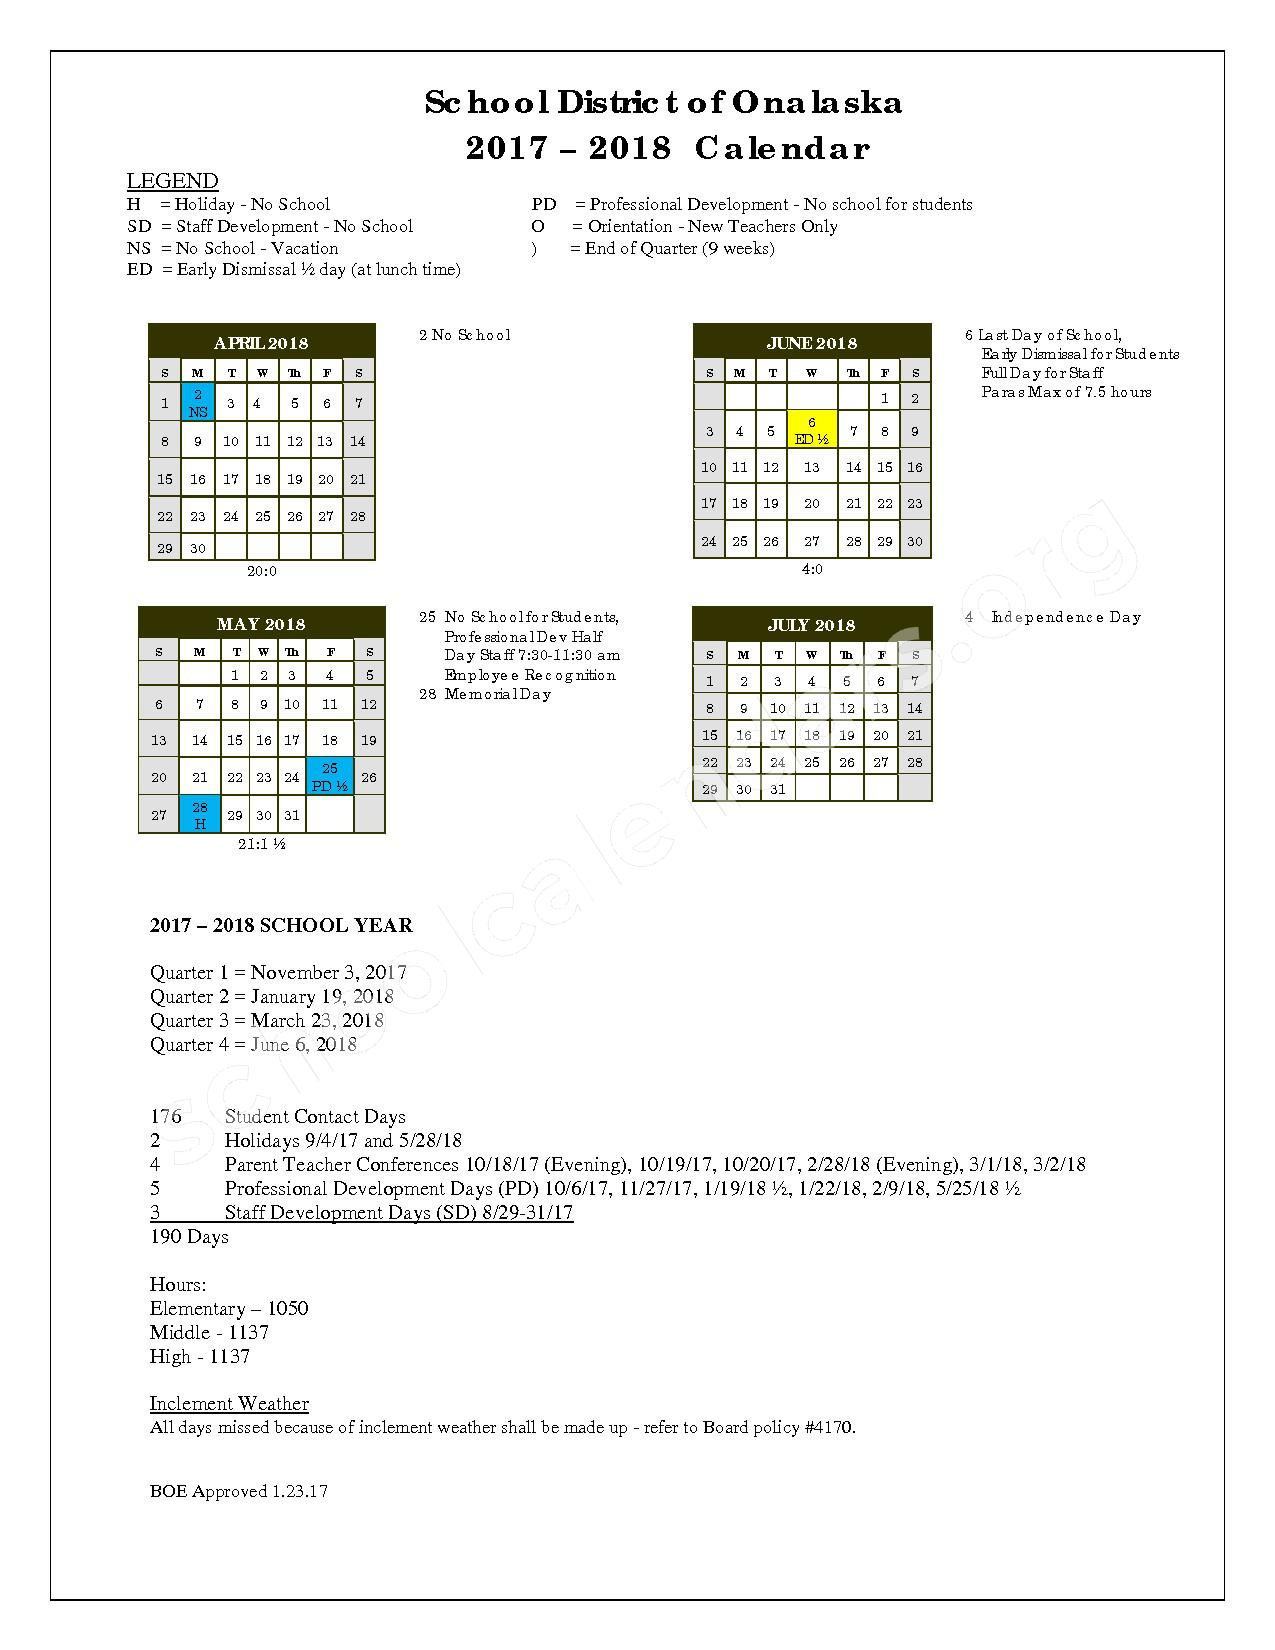 2017 - 2018 District Calendar – Onalaska School District – page 2